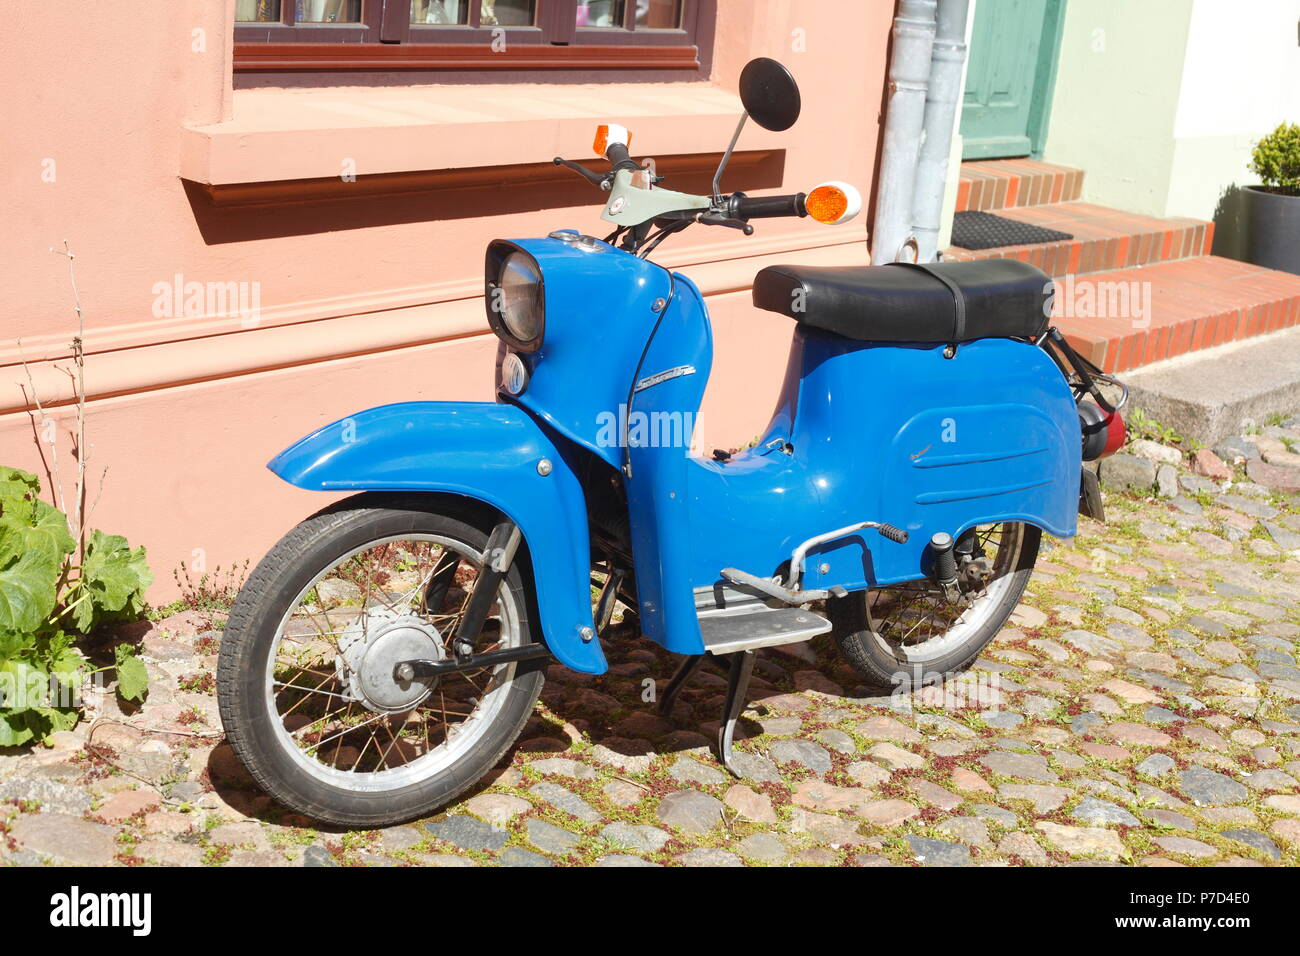 Blue Swallow GDR Scooter, Old Town, Wismar, Mecklenburg-Western Pomerania, Germany - Stock Image